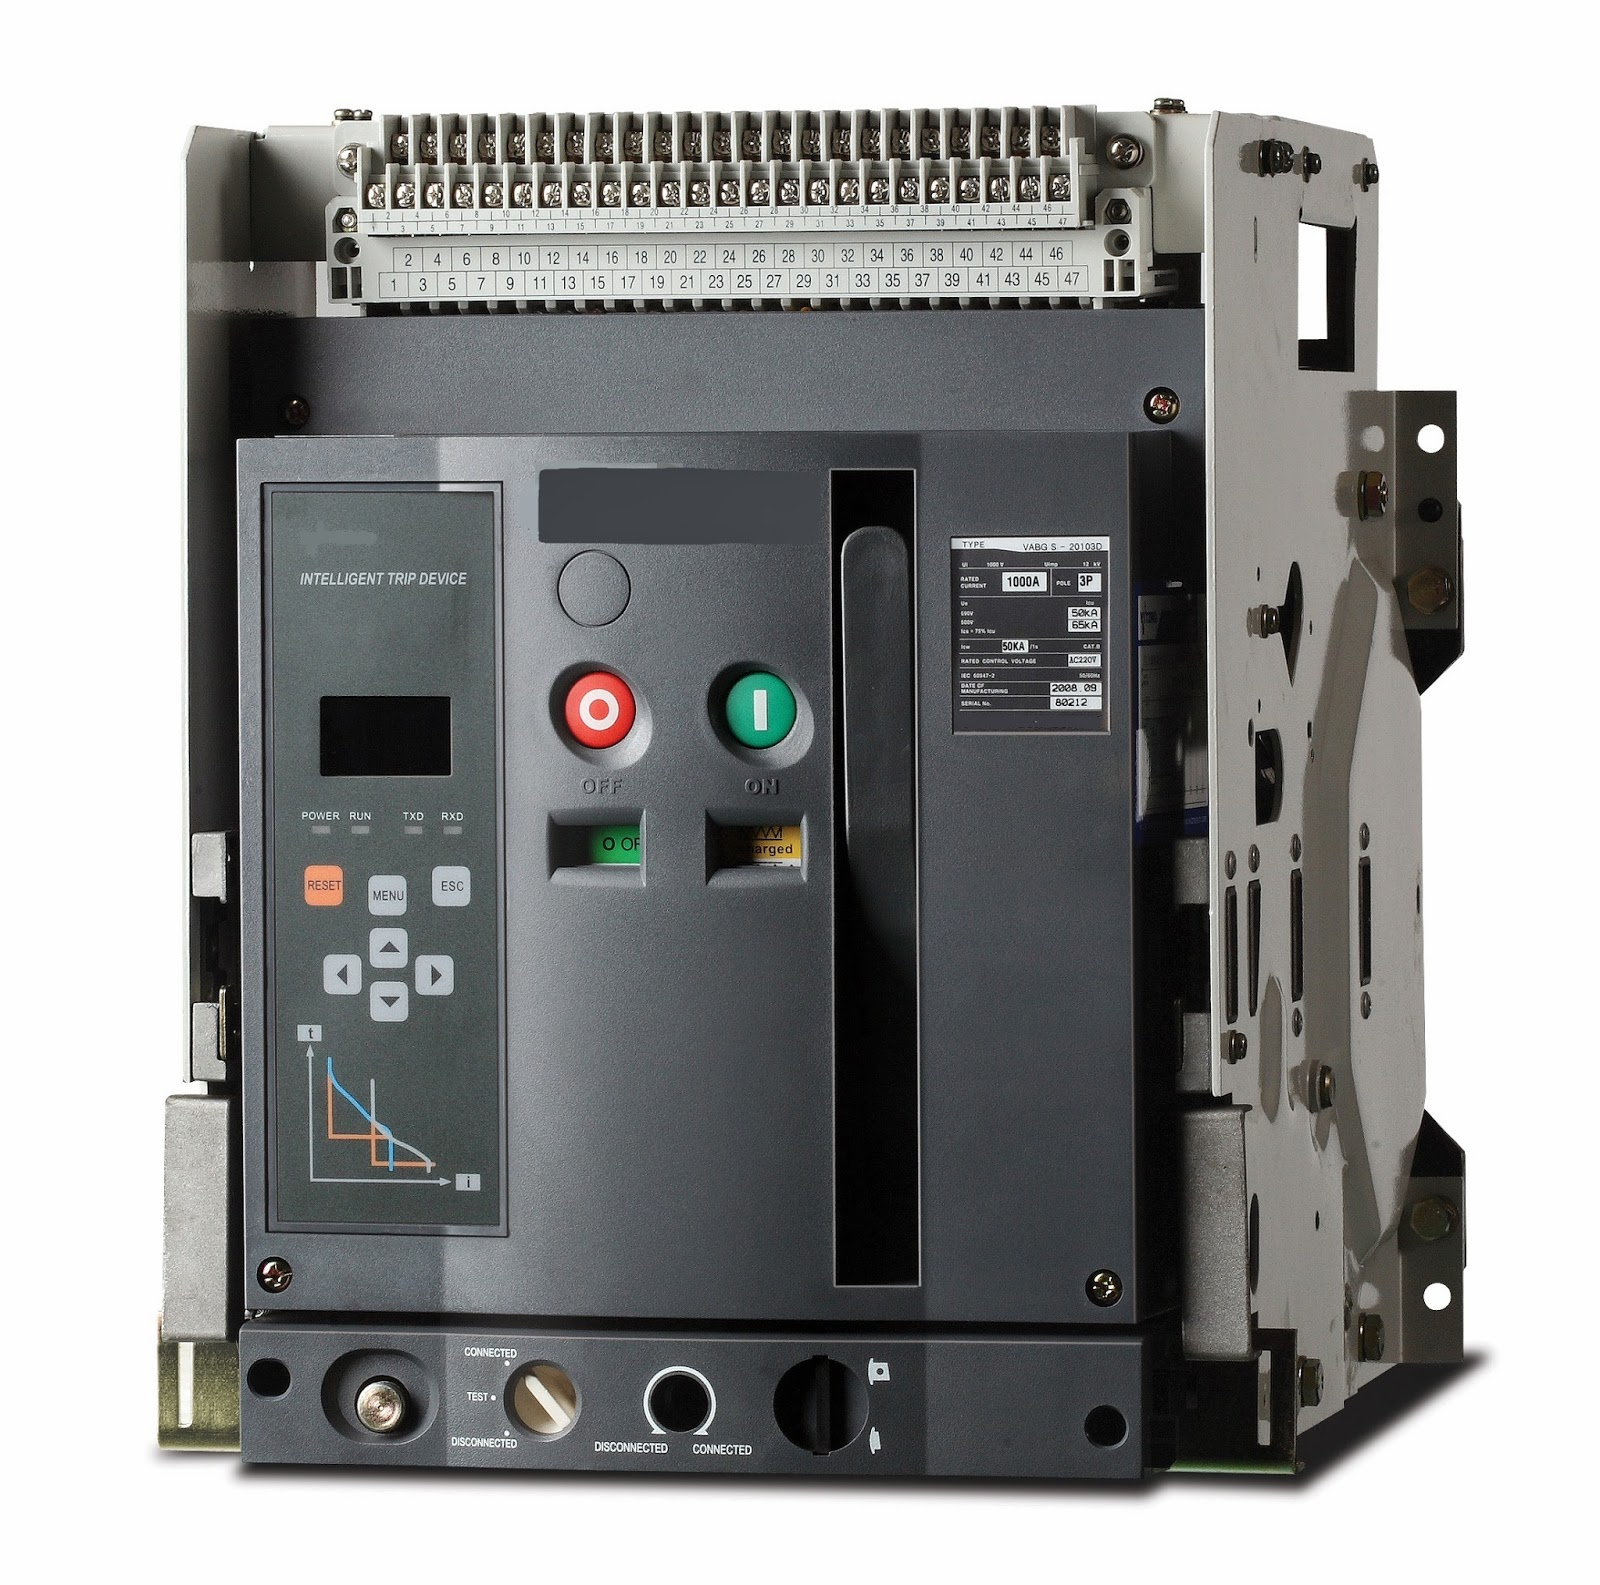 620pb6 additionally Sistema Electrico Del Avion additionally 88659 besides Starters Submersible Controllers besides 291640245970. on circuit breaker panel